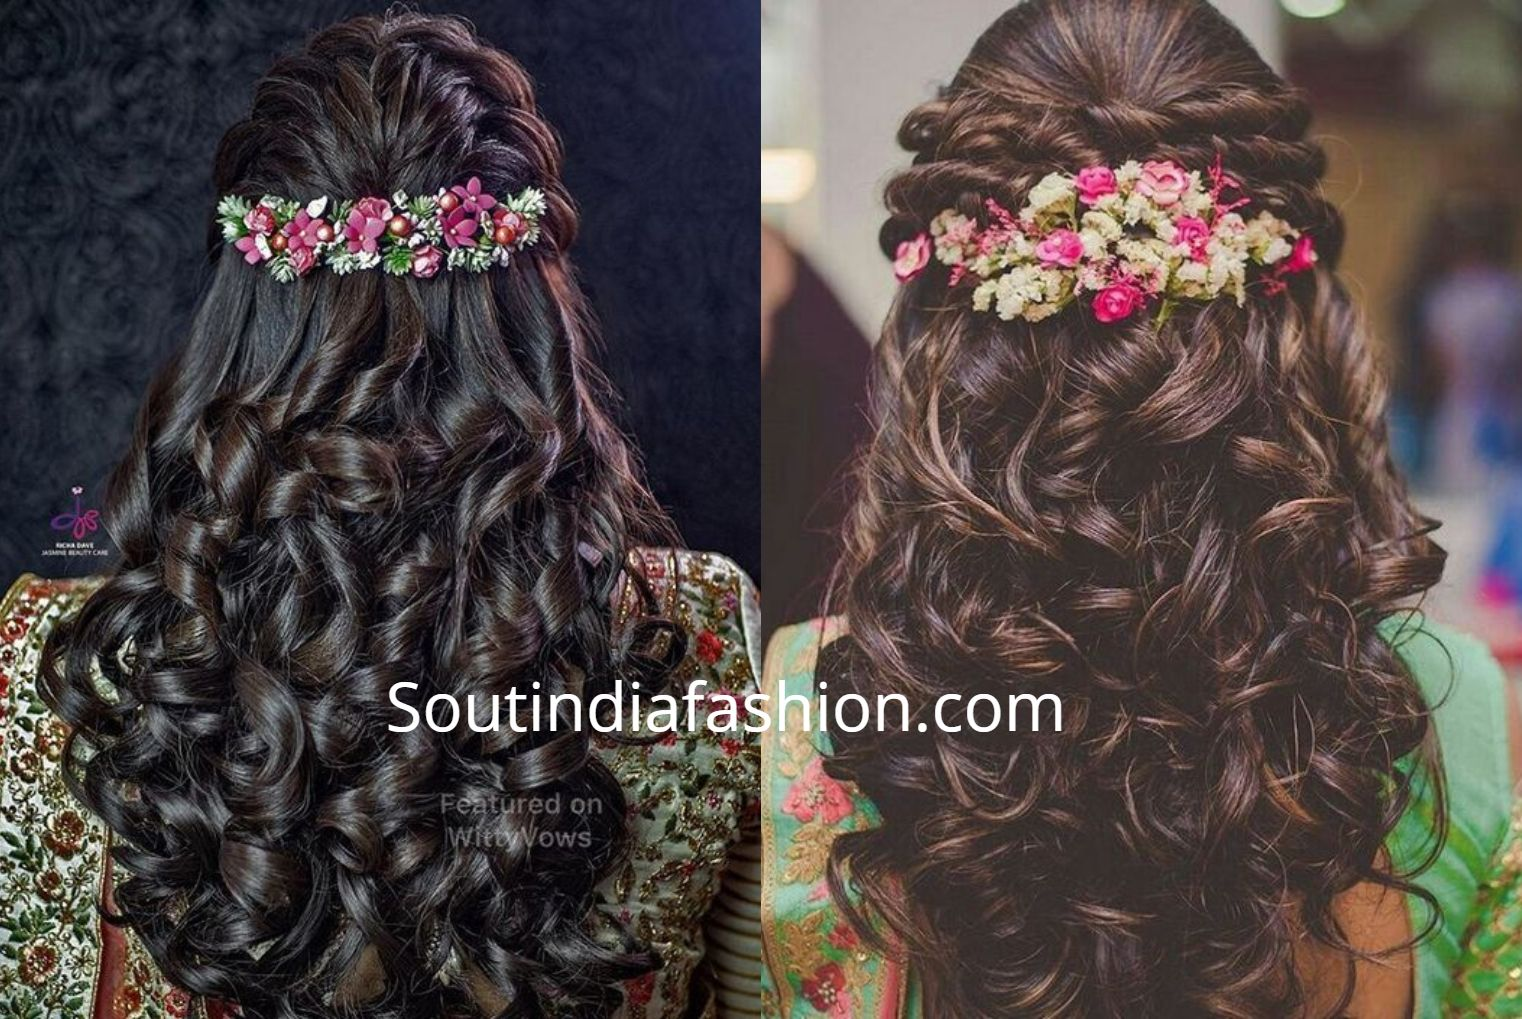 Top 10 South Indian Bridal Hairstyles For Weddings Engagement Etc